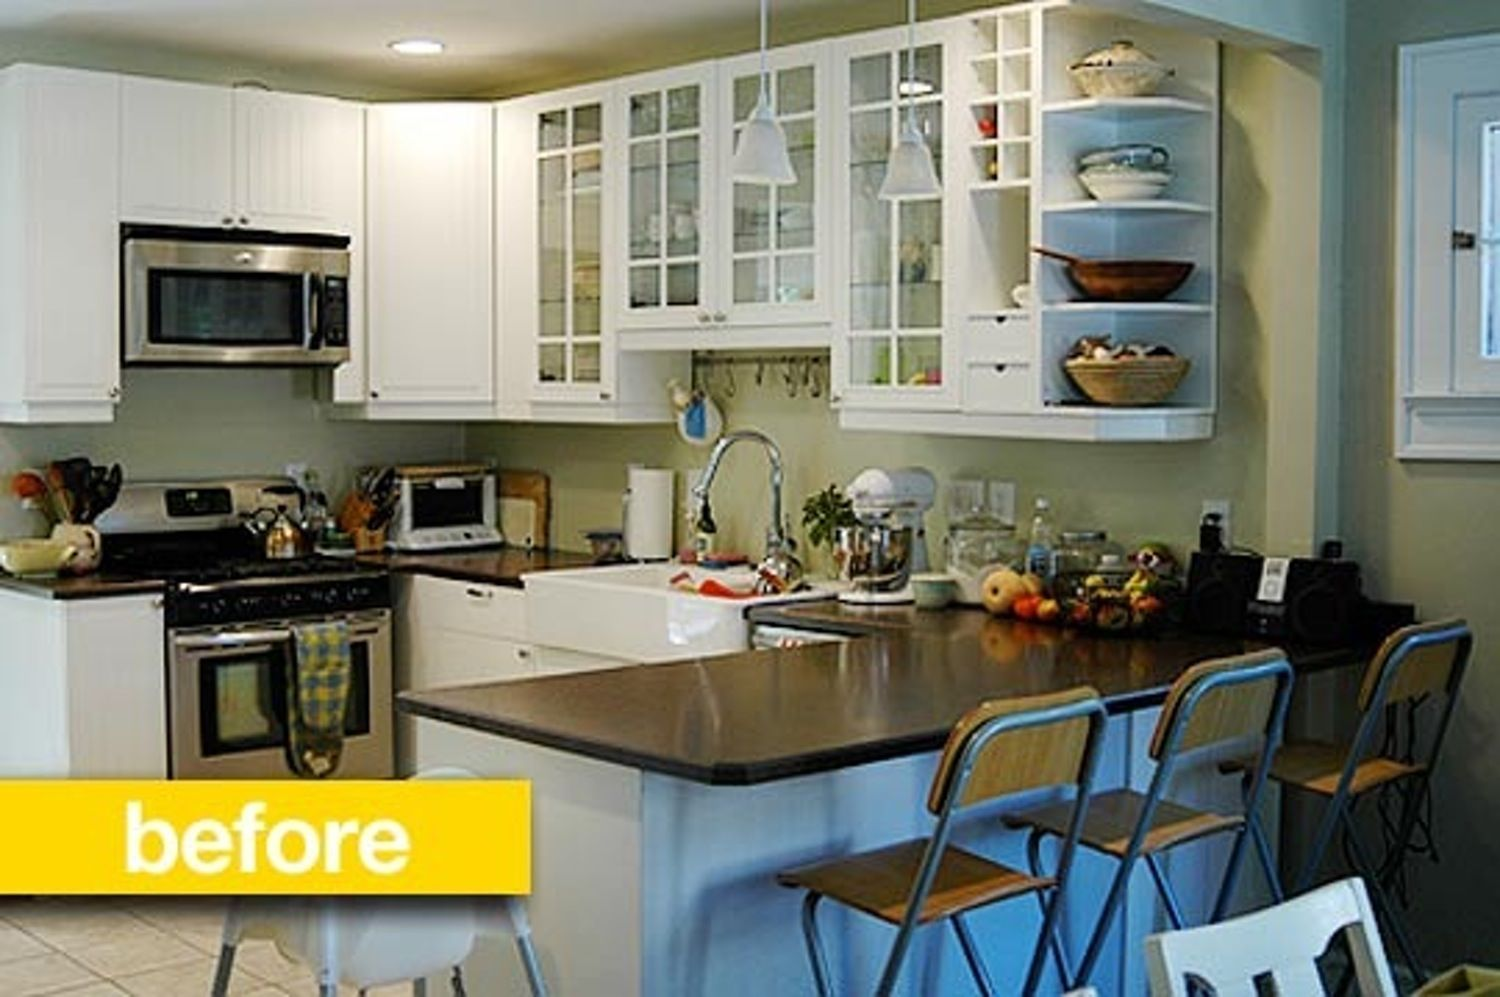 Before after katys 700 windowcentric kitchen remodel